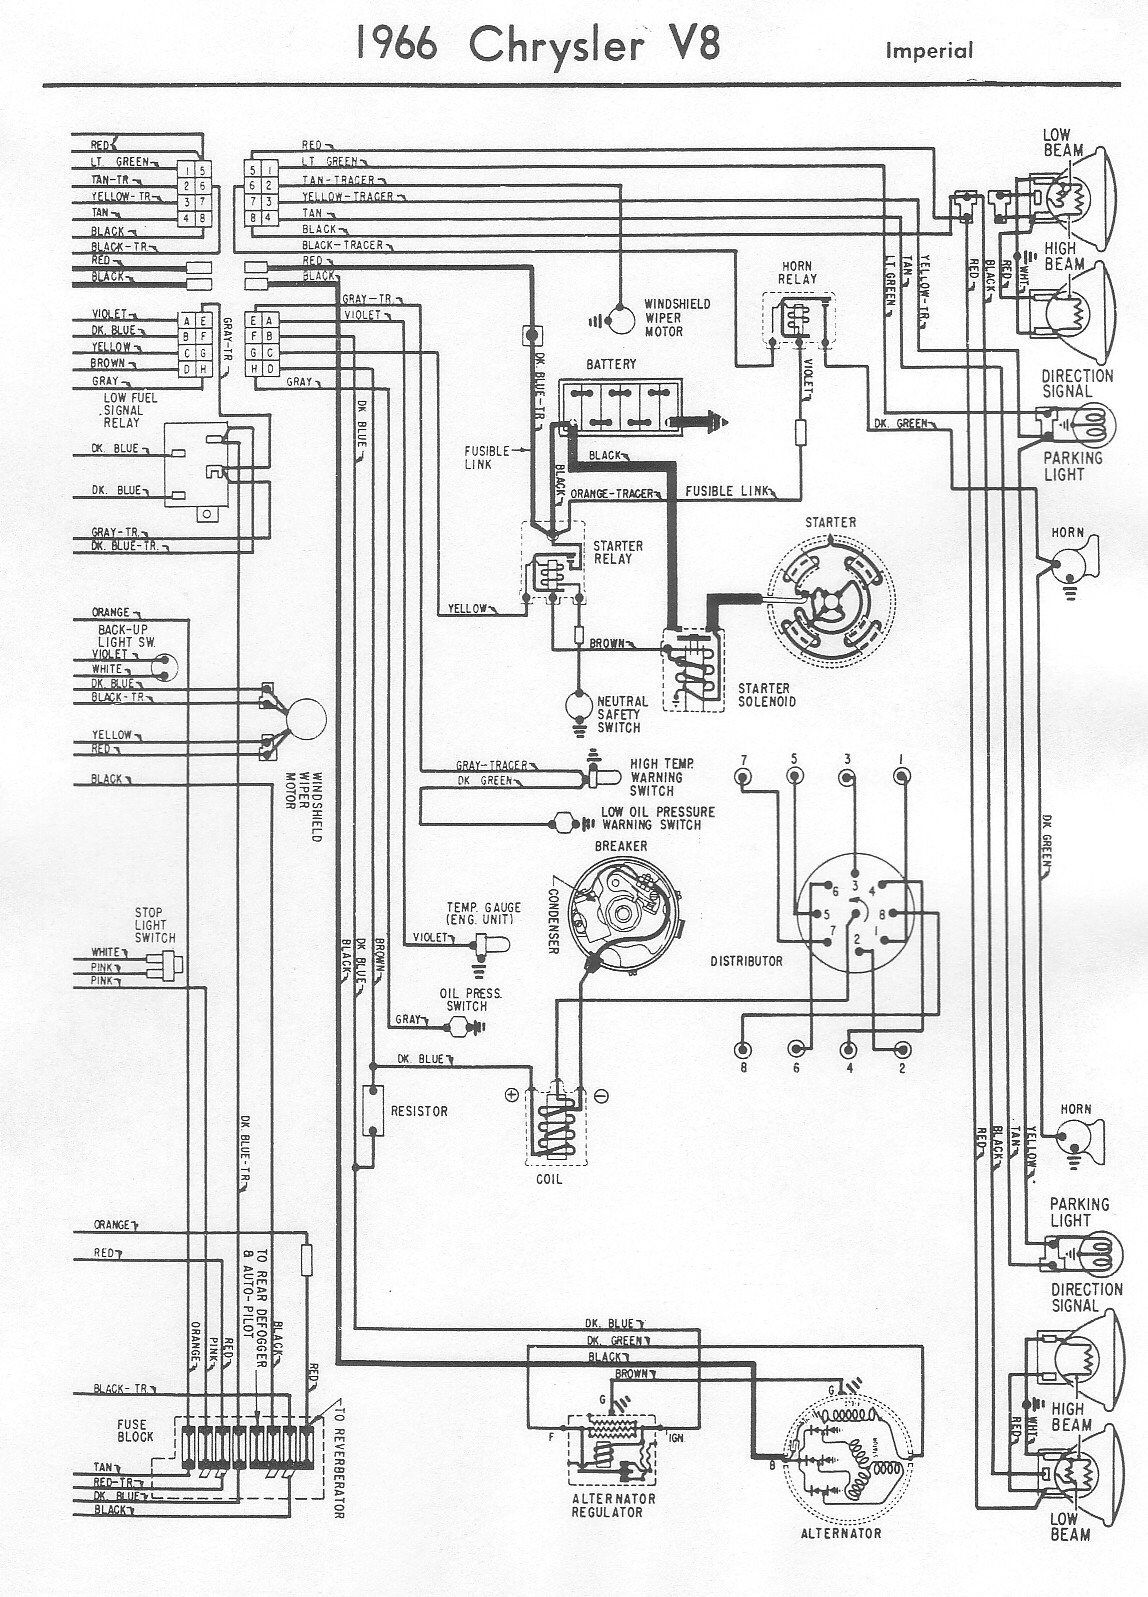 1954 Chrysler Wiring Diagram 300 Stereo Plymouth Radio Diagrams Best Library1954 Third Level Rh 2